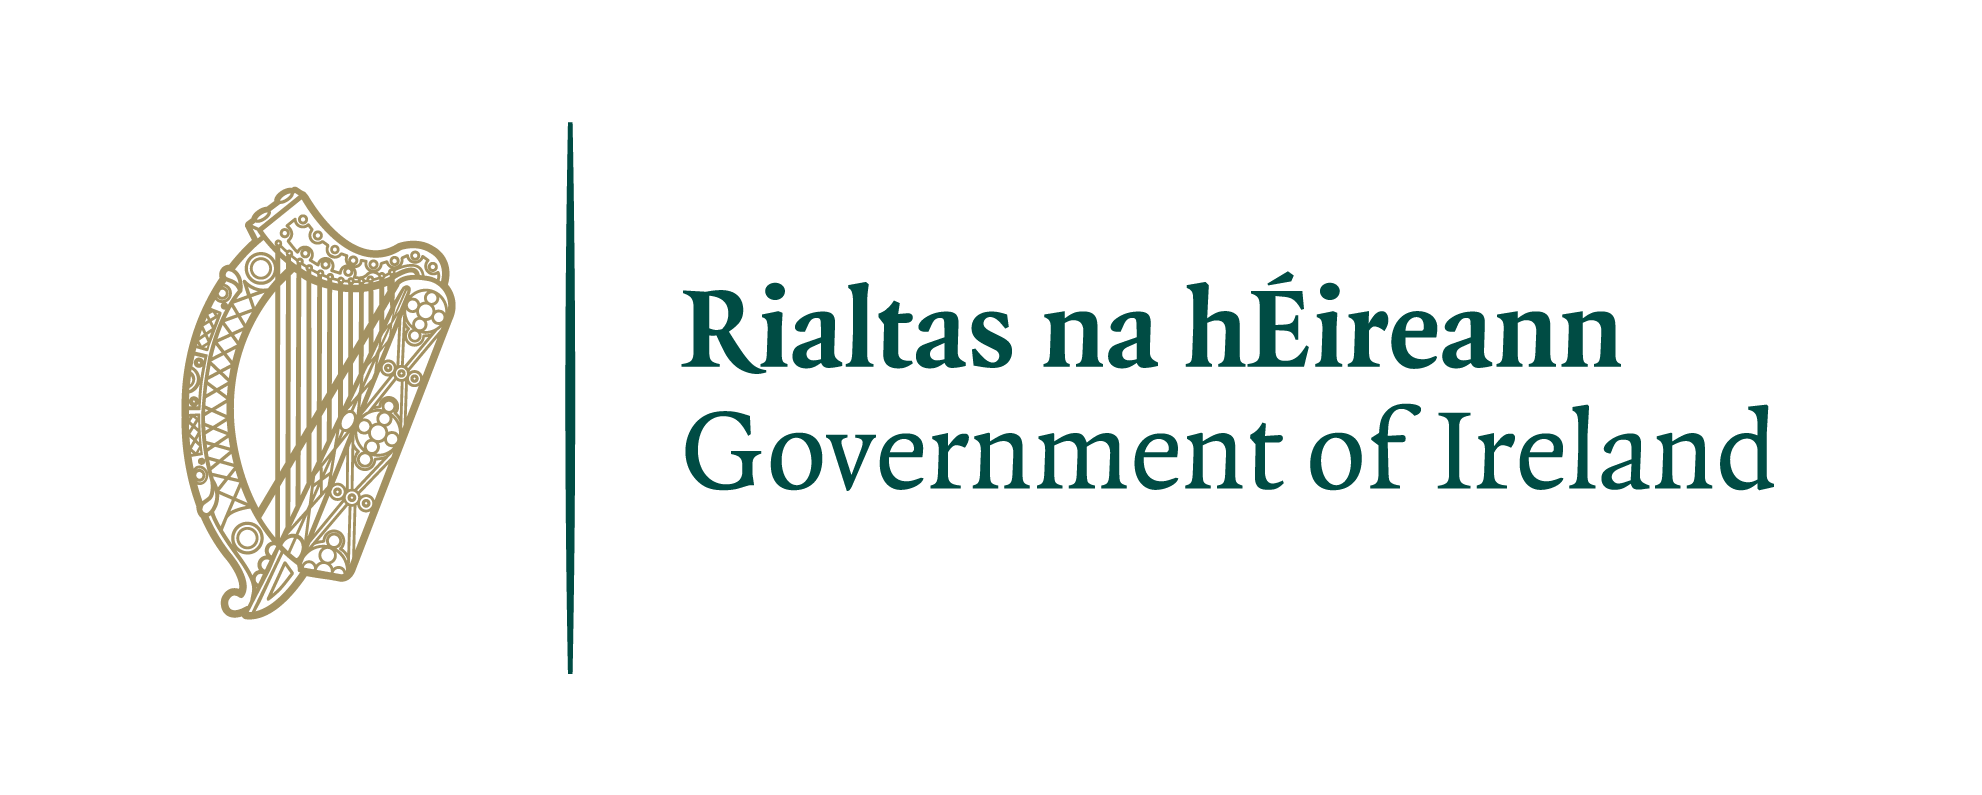 Government of Ireland